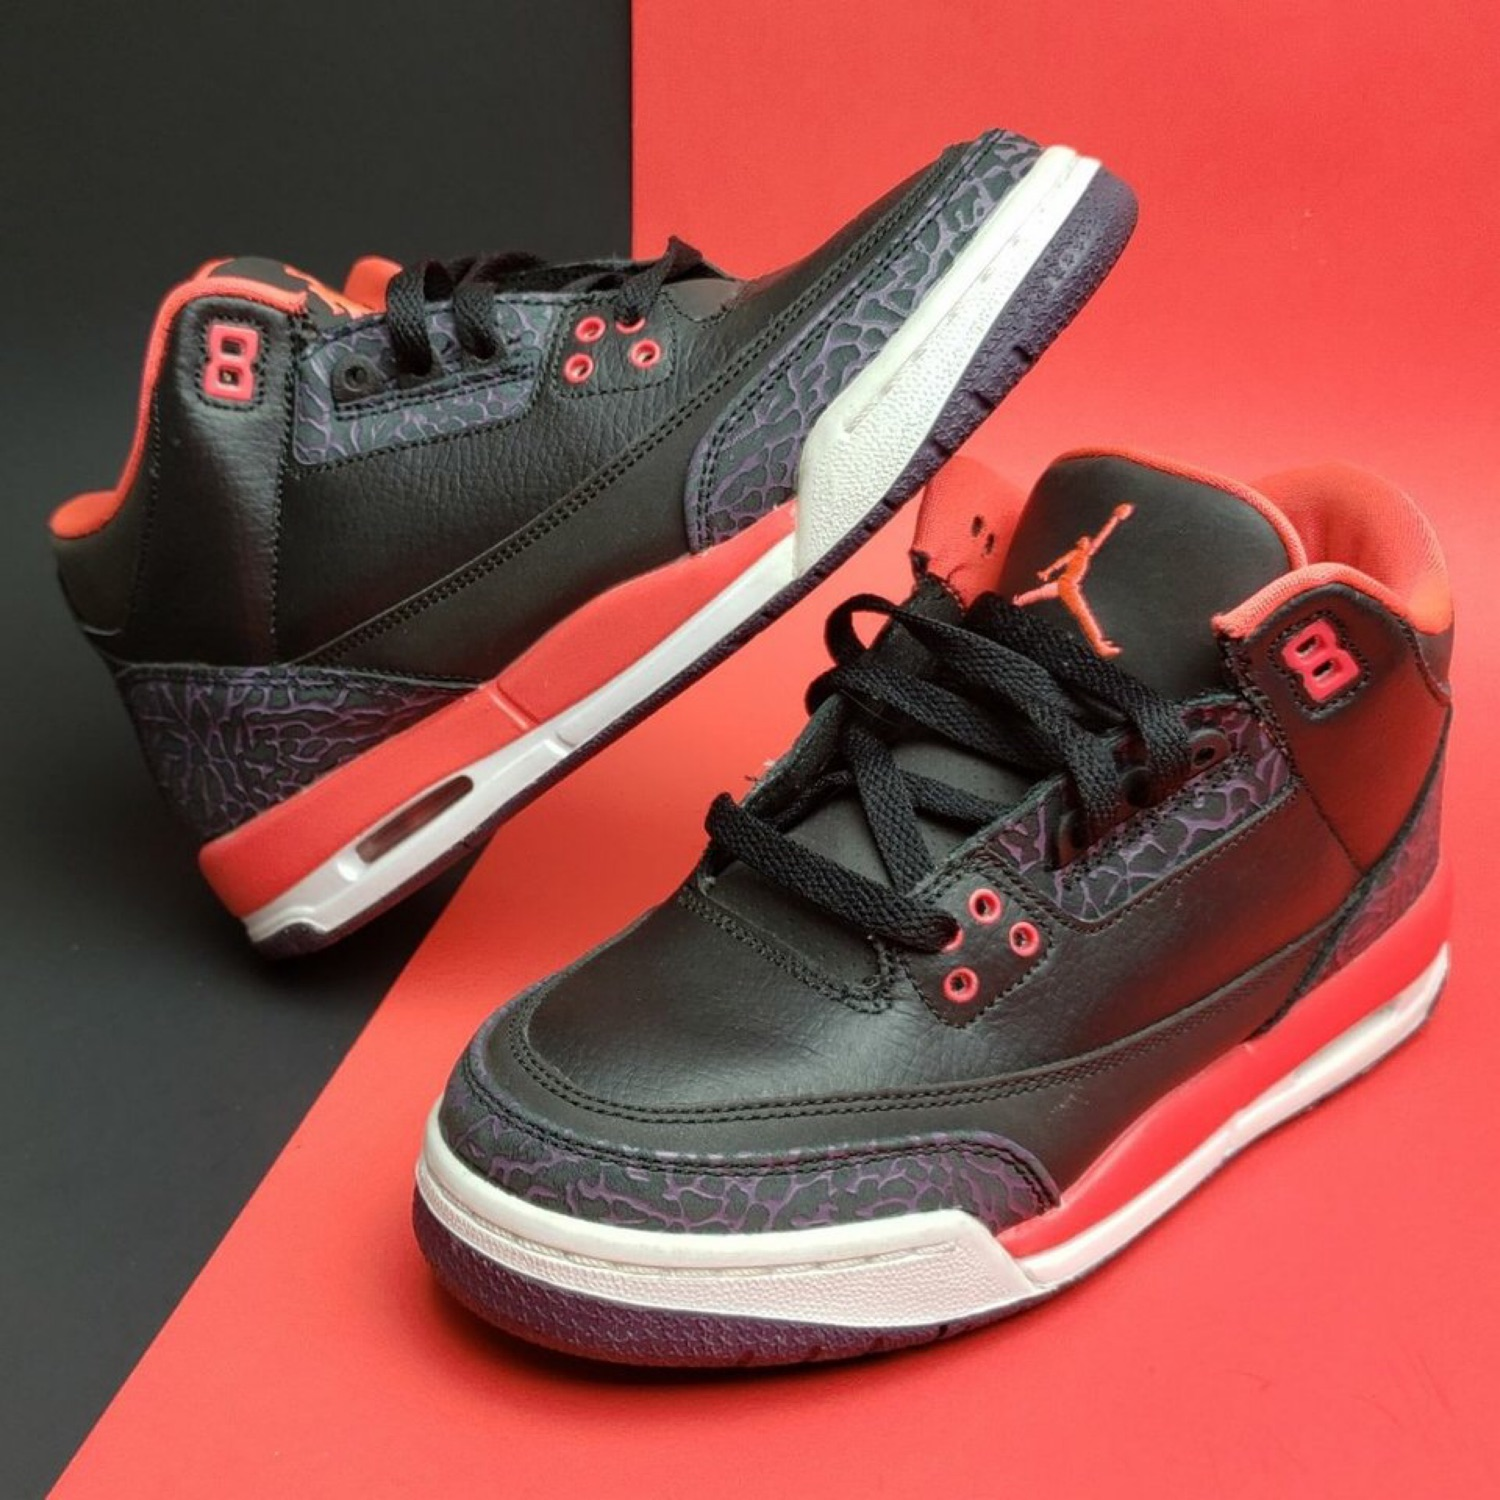 "Air Jordan 3 Retro Gs """"Crimson"""" Sneakers!"